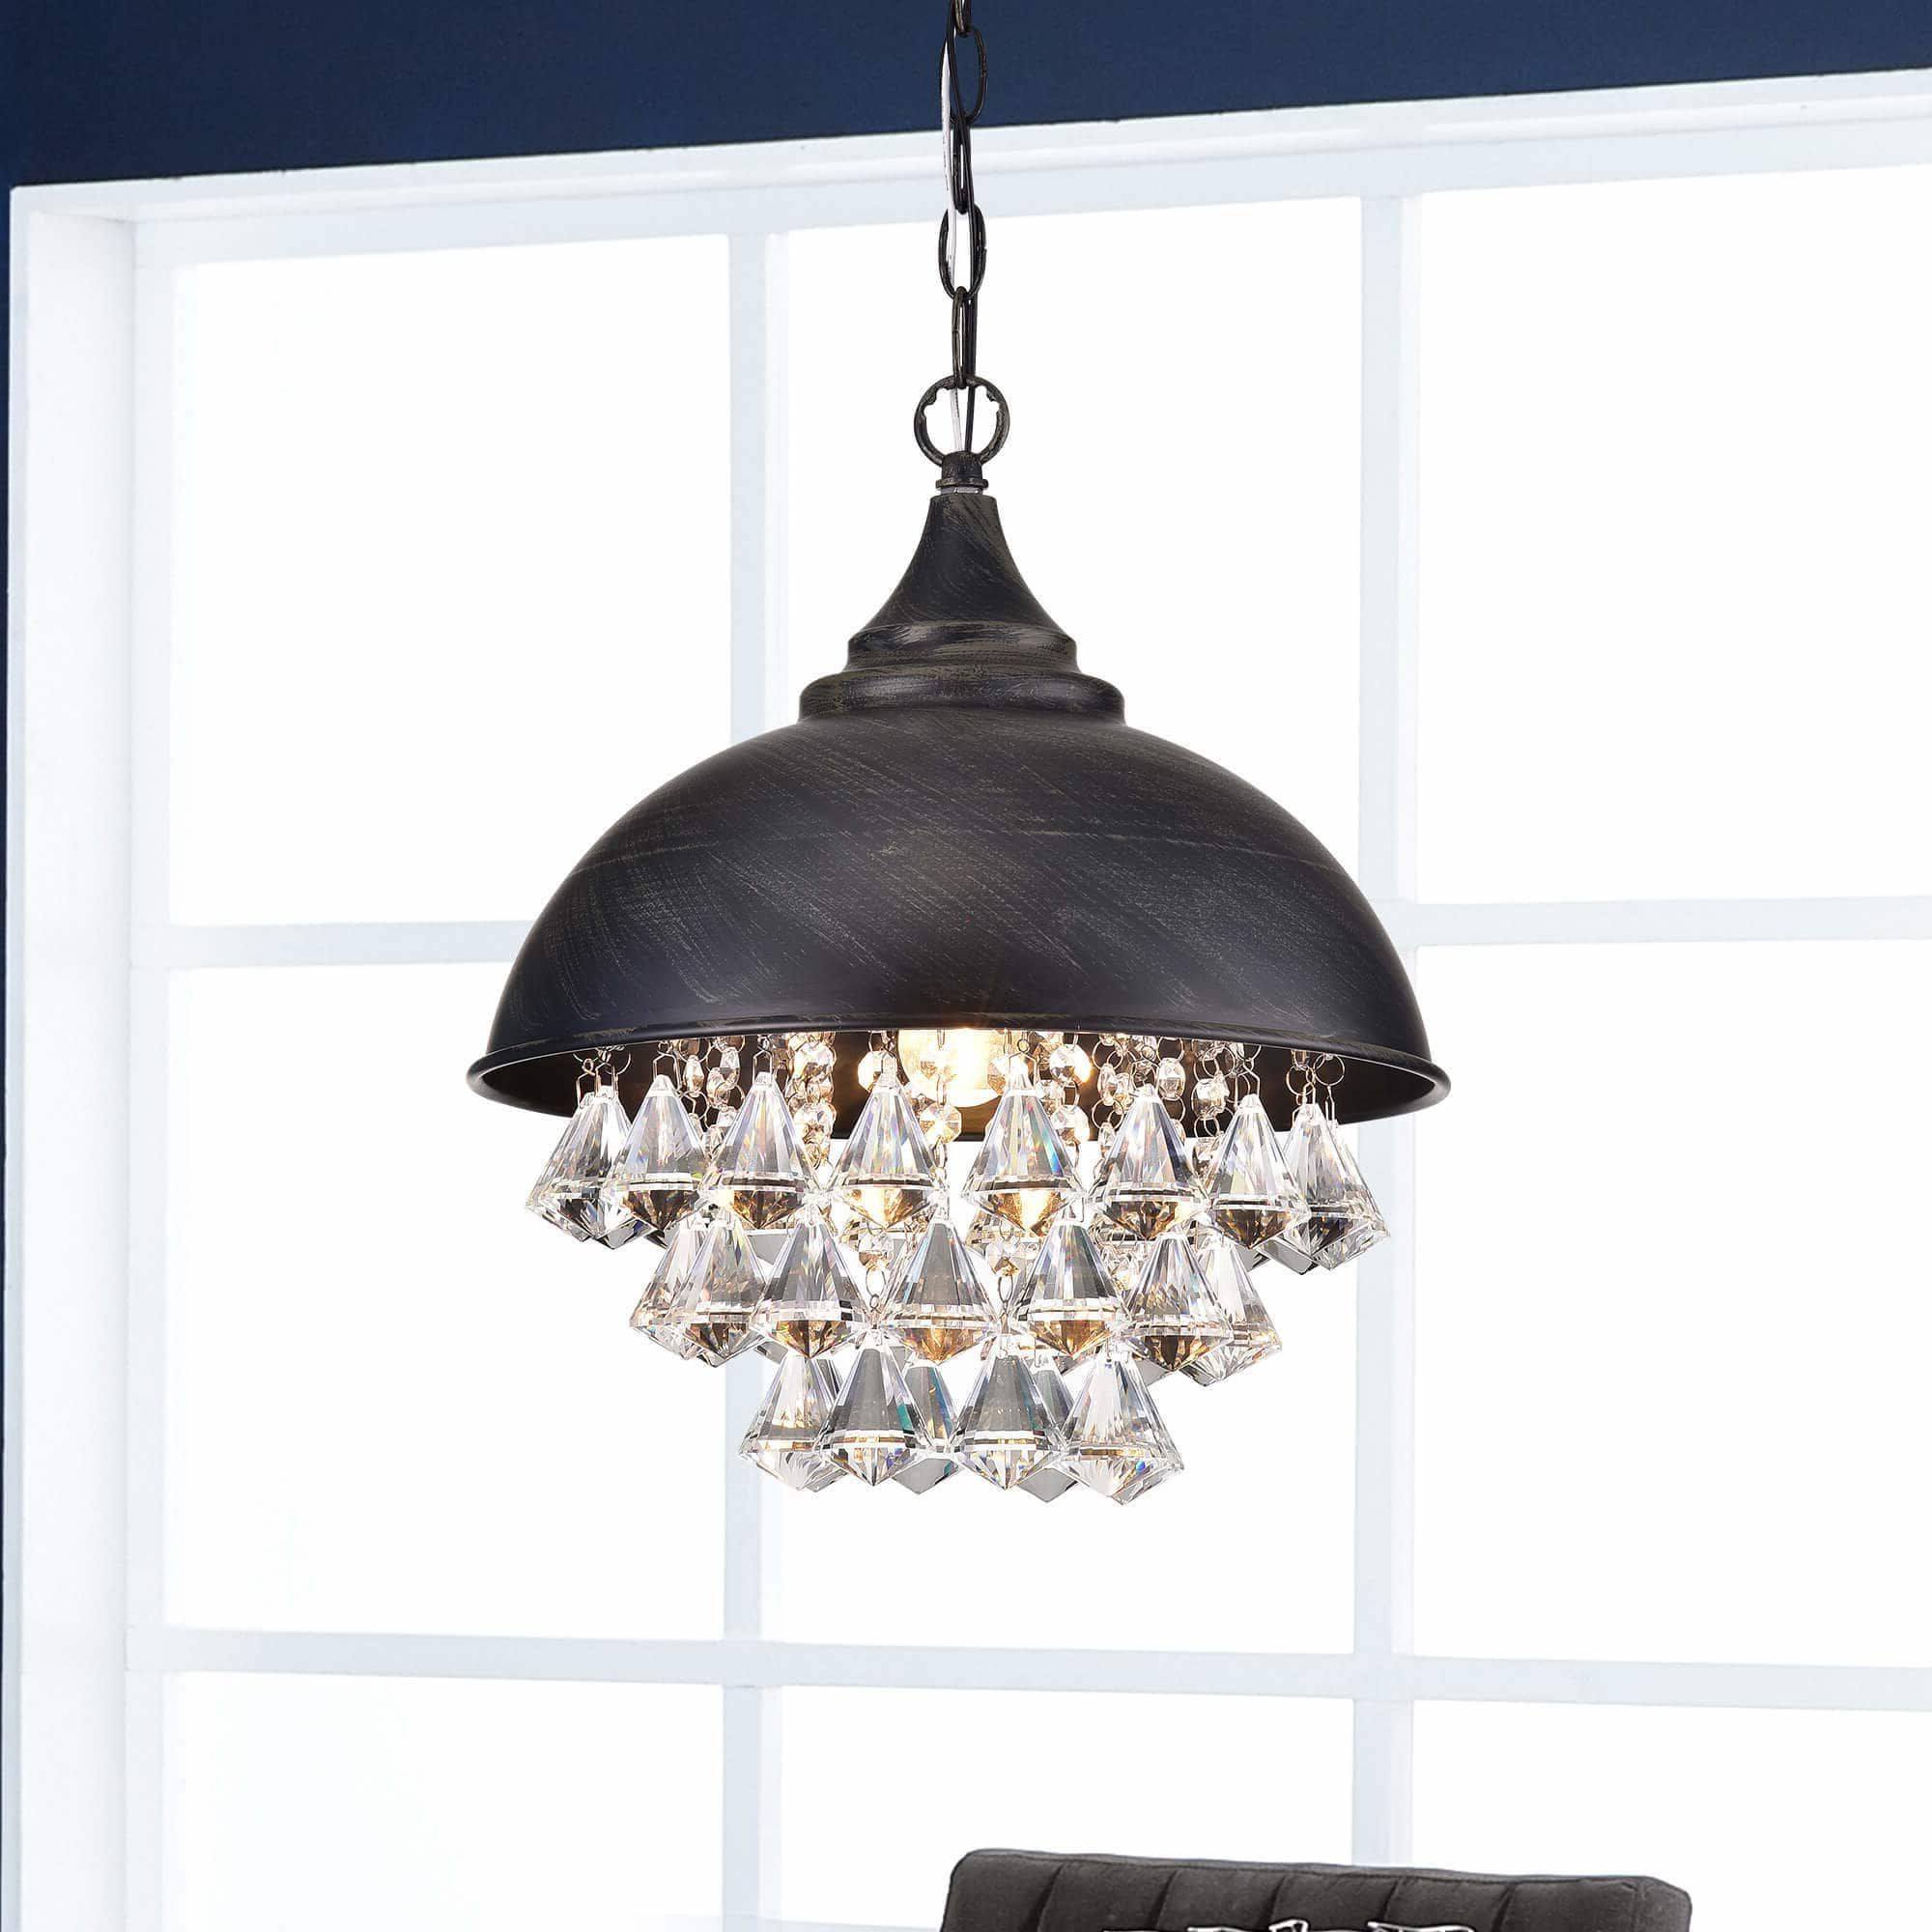 Best And Newest Visalia Antique Black Single Light Crystal Chandelier Intended For Monadnock 1 Light Single Dome Pendants (View 5 of 25)